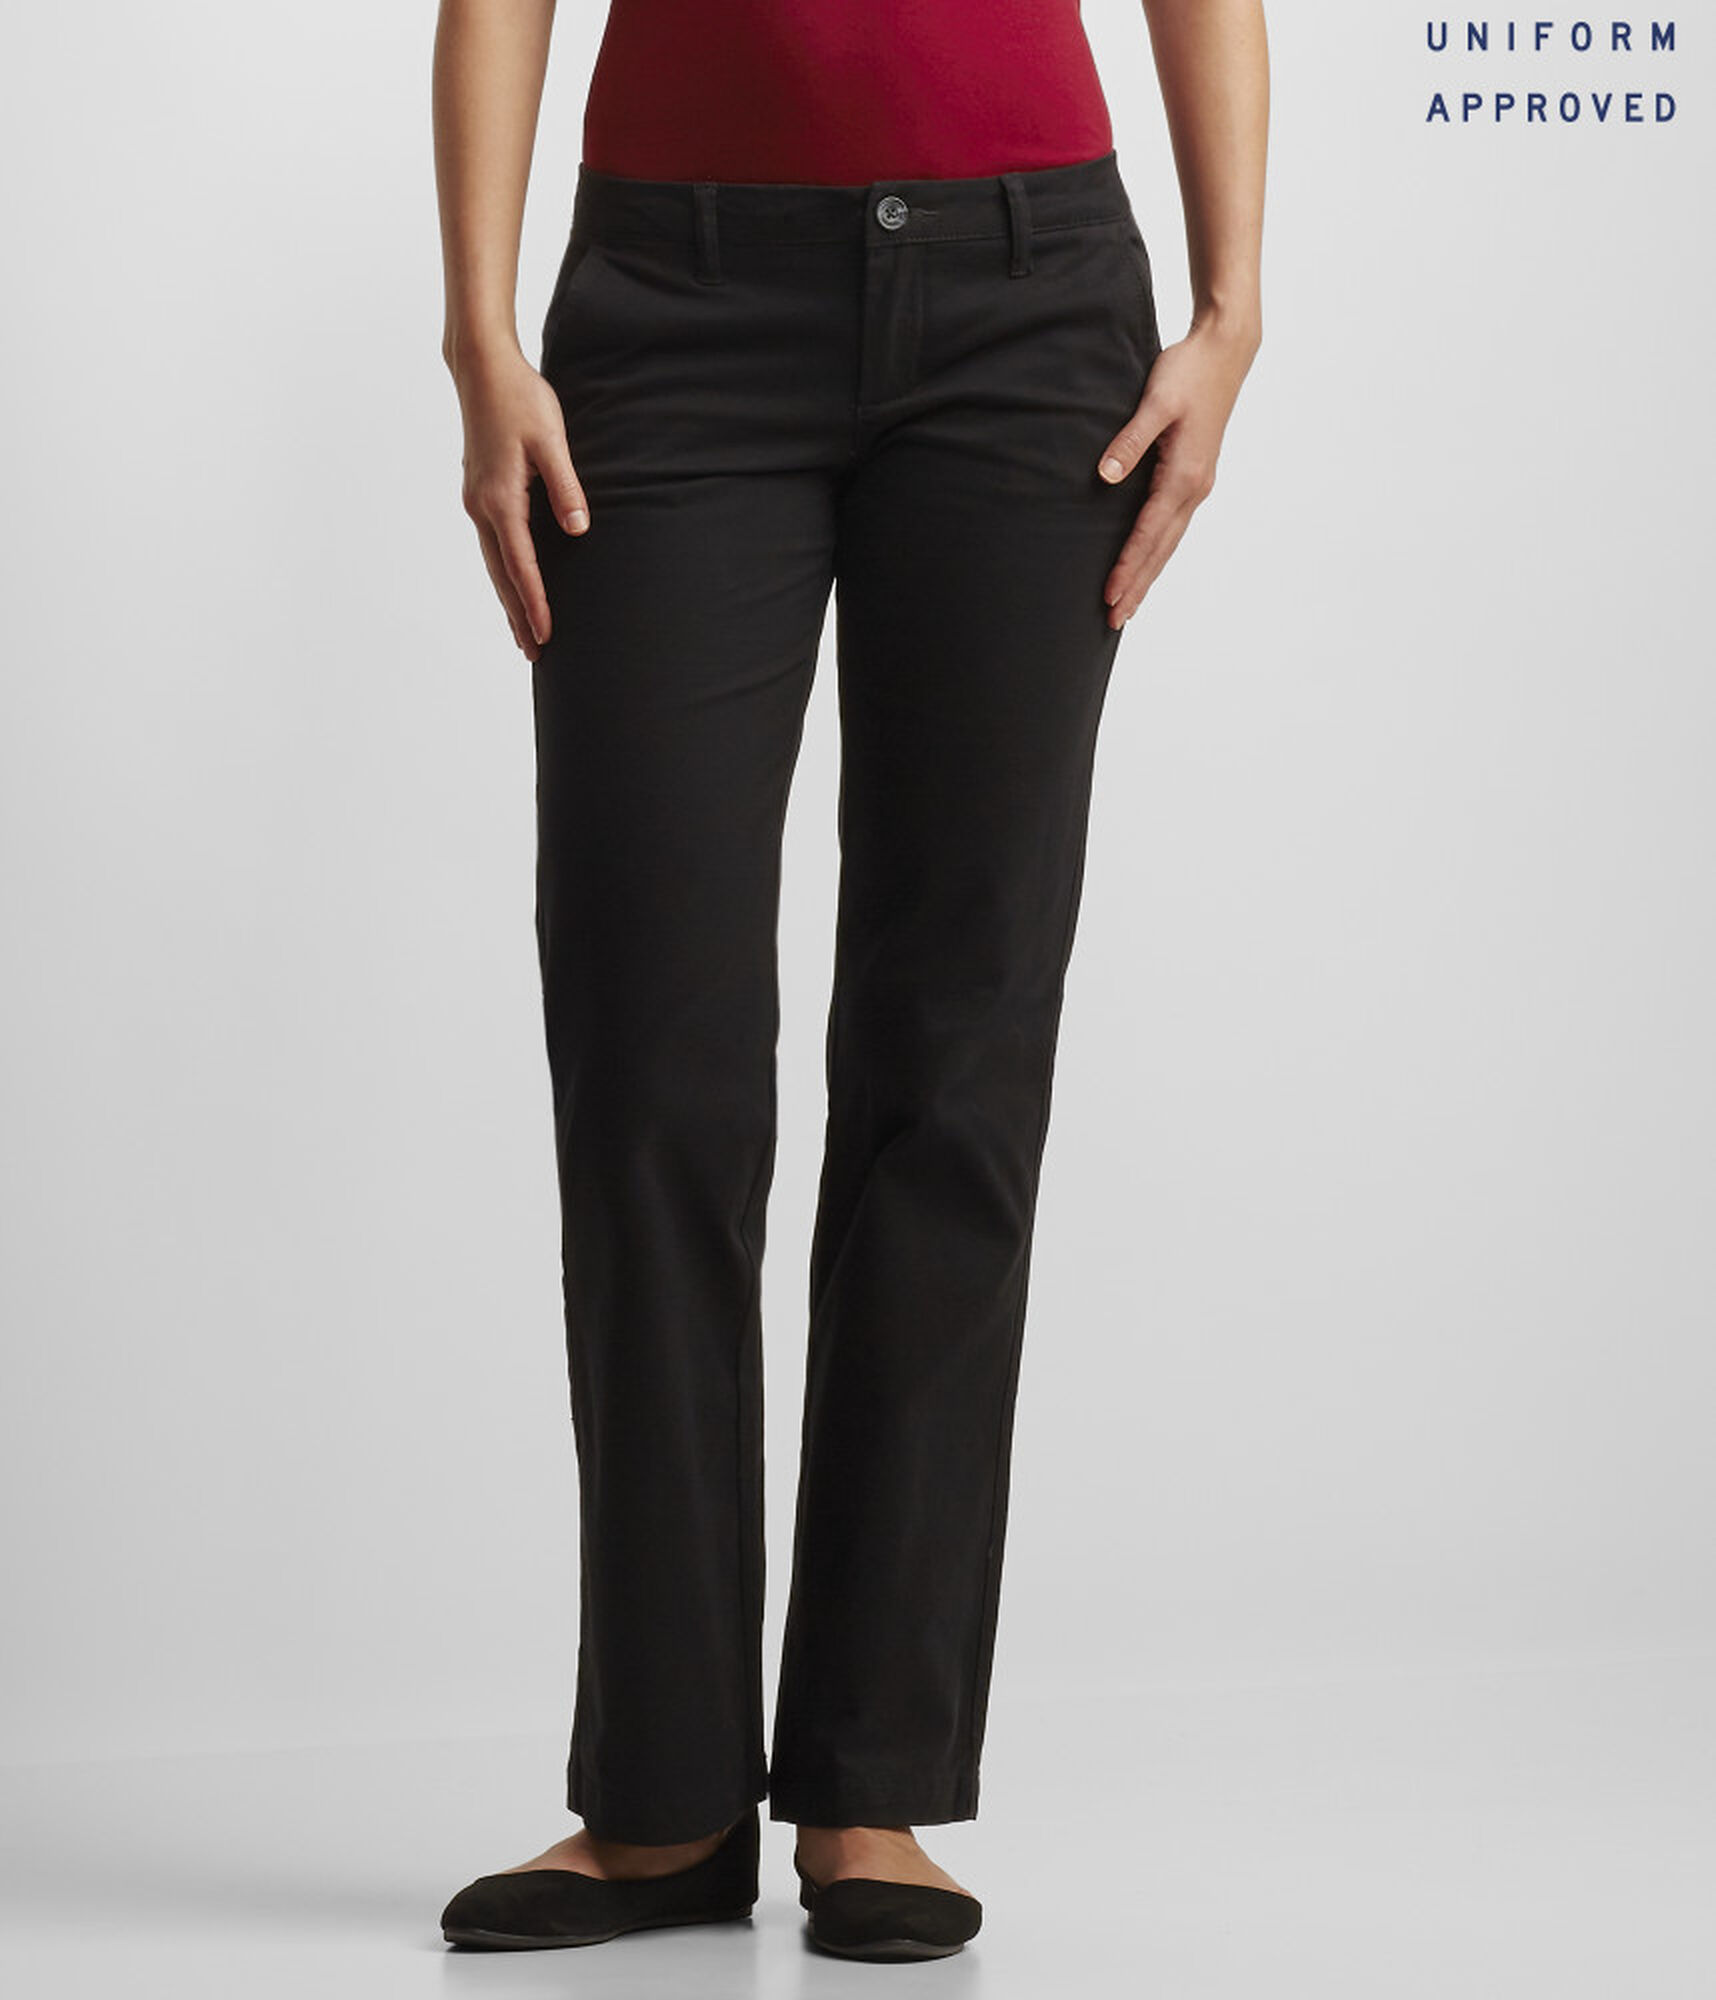 710bc738eb799 Work Pants for Women